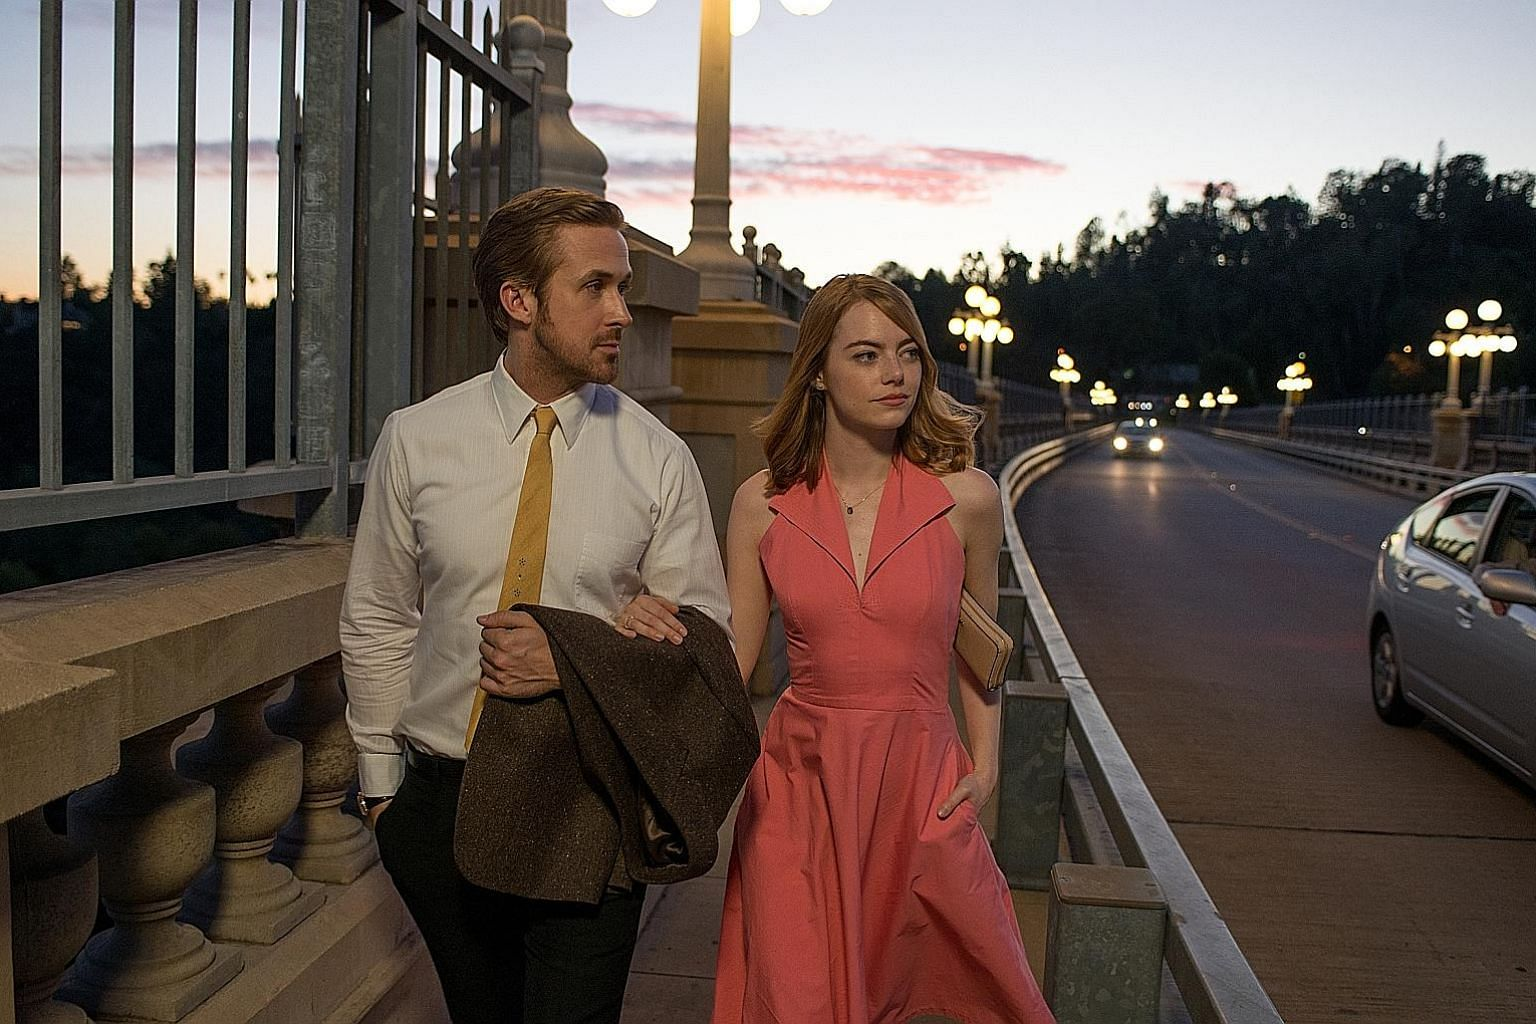 La La Land, starring Emma Stone and Ryan Gosling (both right), grabbed 14 Academy Award nominations, while Meryl Streep is up for Best Actress for her role in Florence Foster Jenkins (below, right).